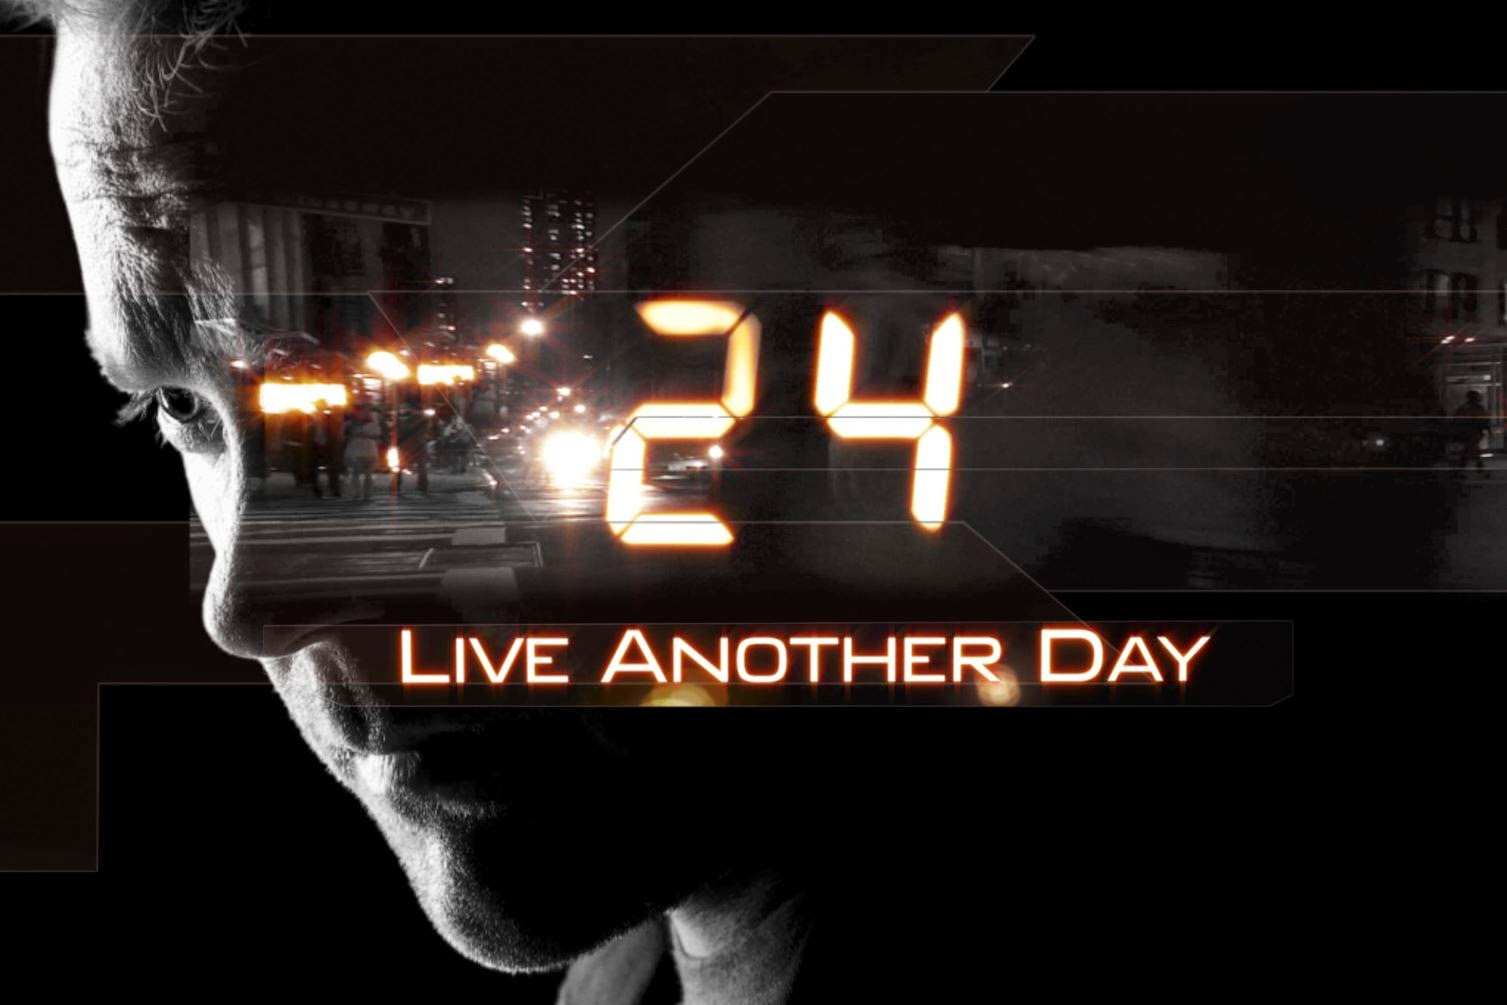 Audiencias-Ratings-24-Live-Another-Day-Premiere-Estreno